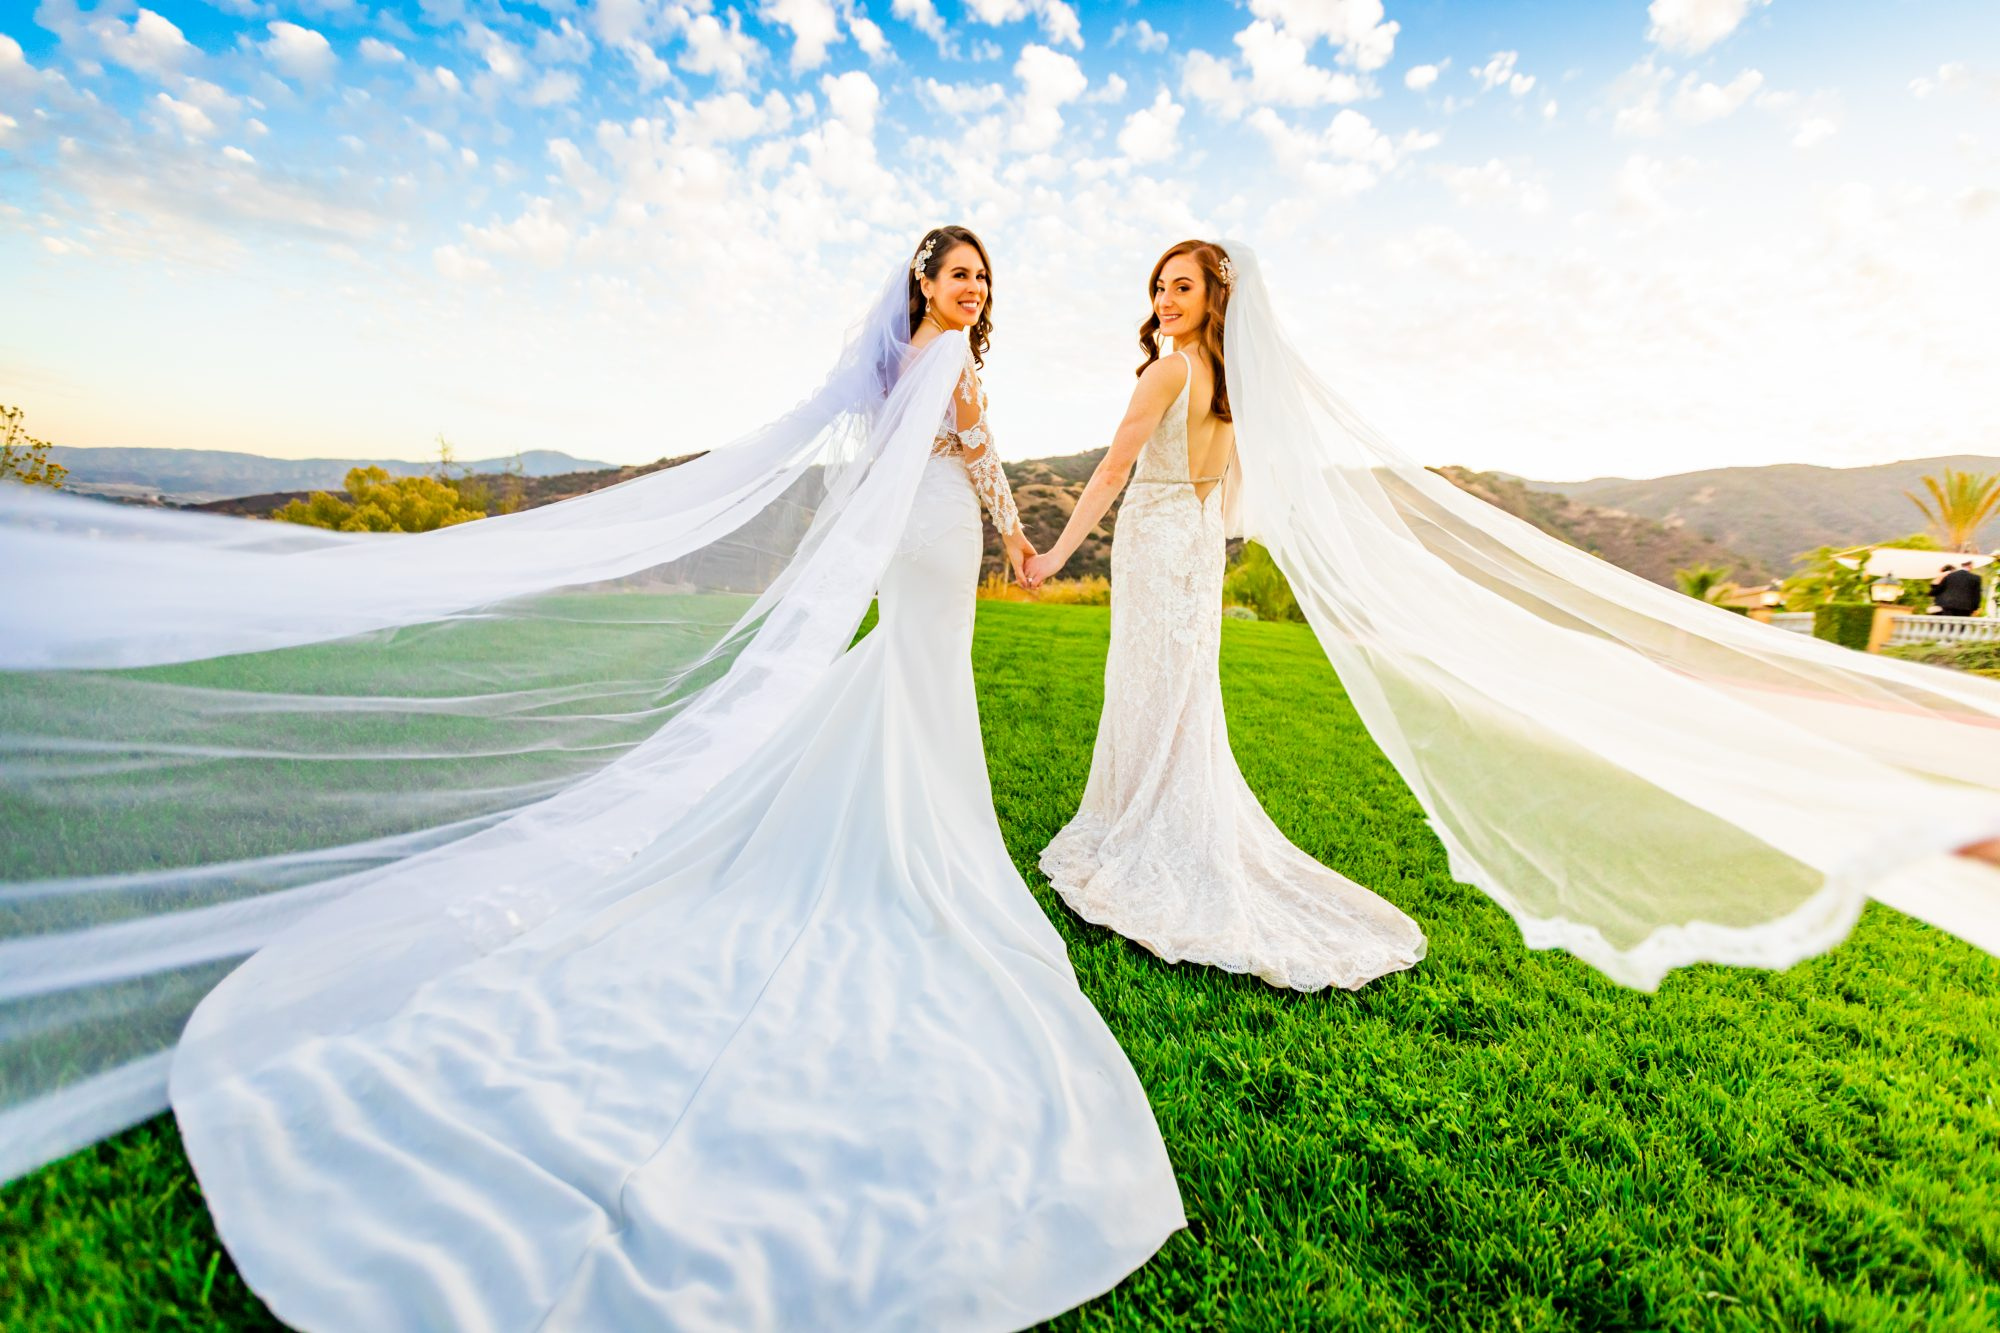 How to Remove Stains from a Wedding Dress, 2 women in white wedding gowns